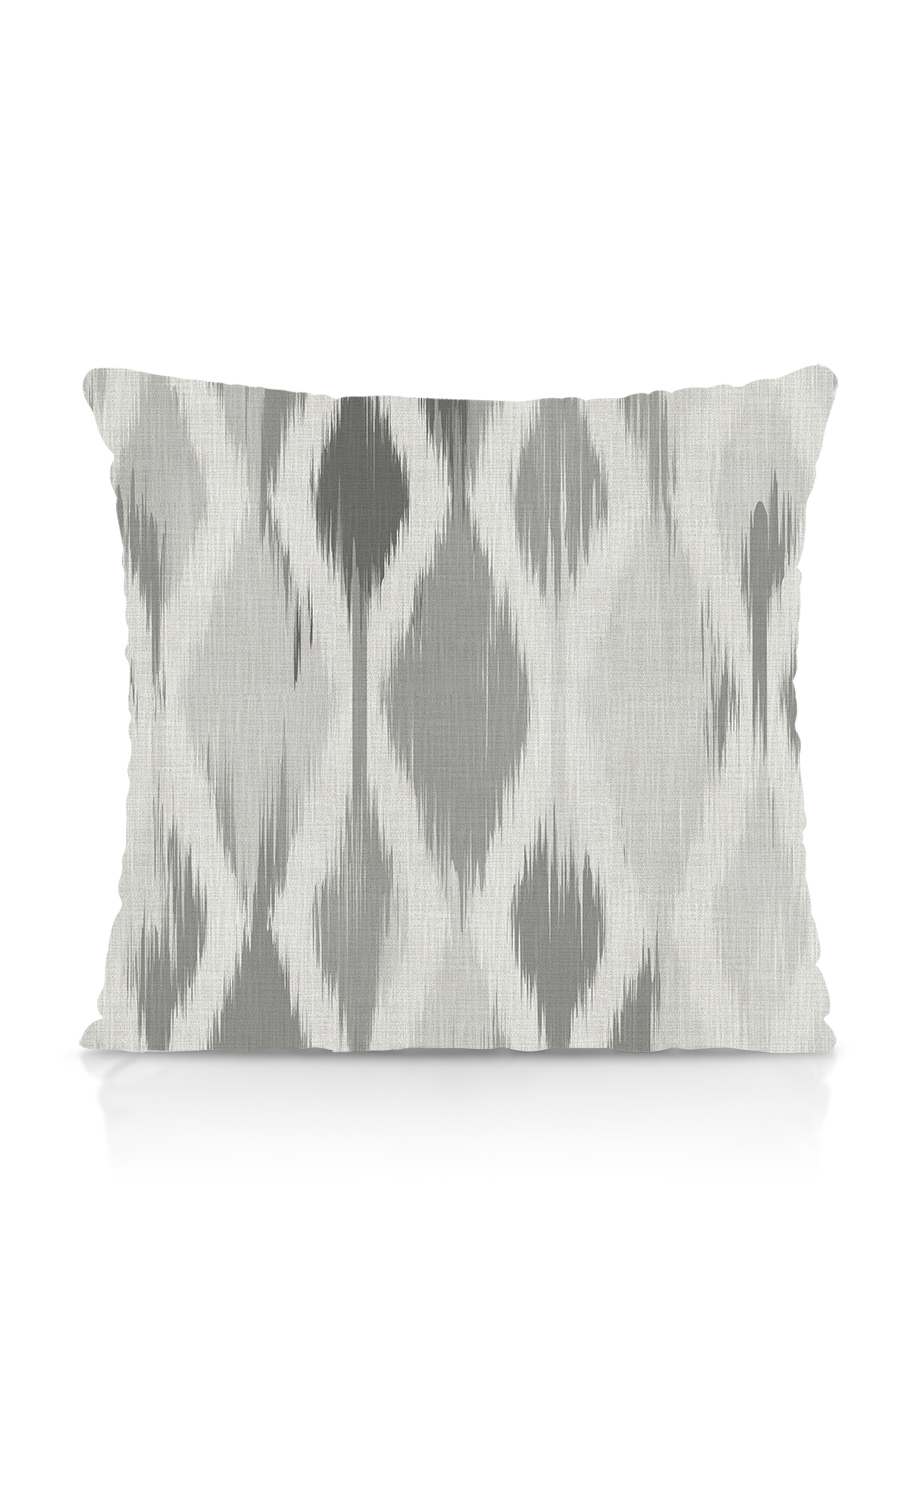 Affordable Abstract Cushions